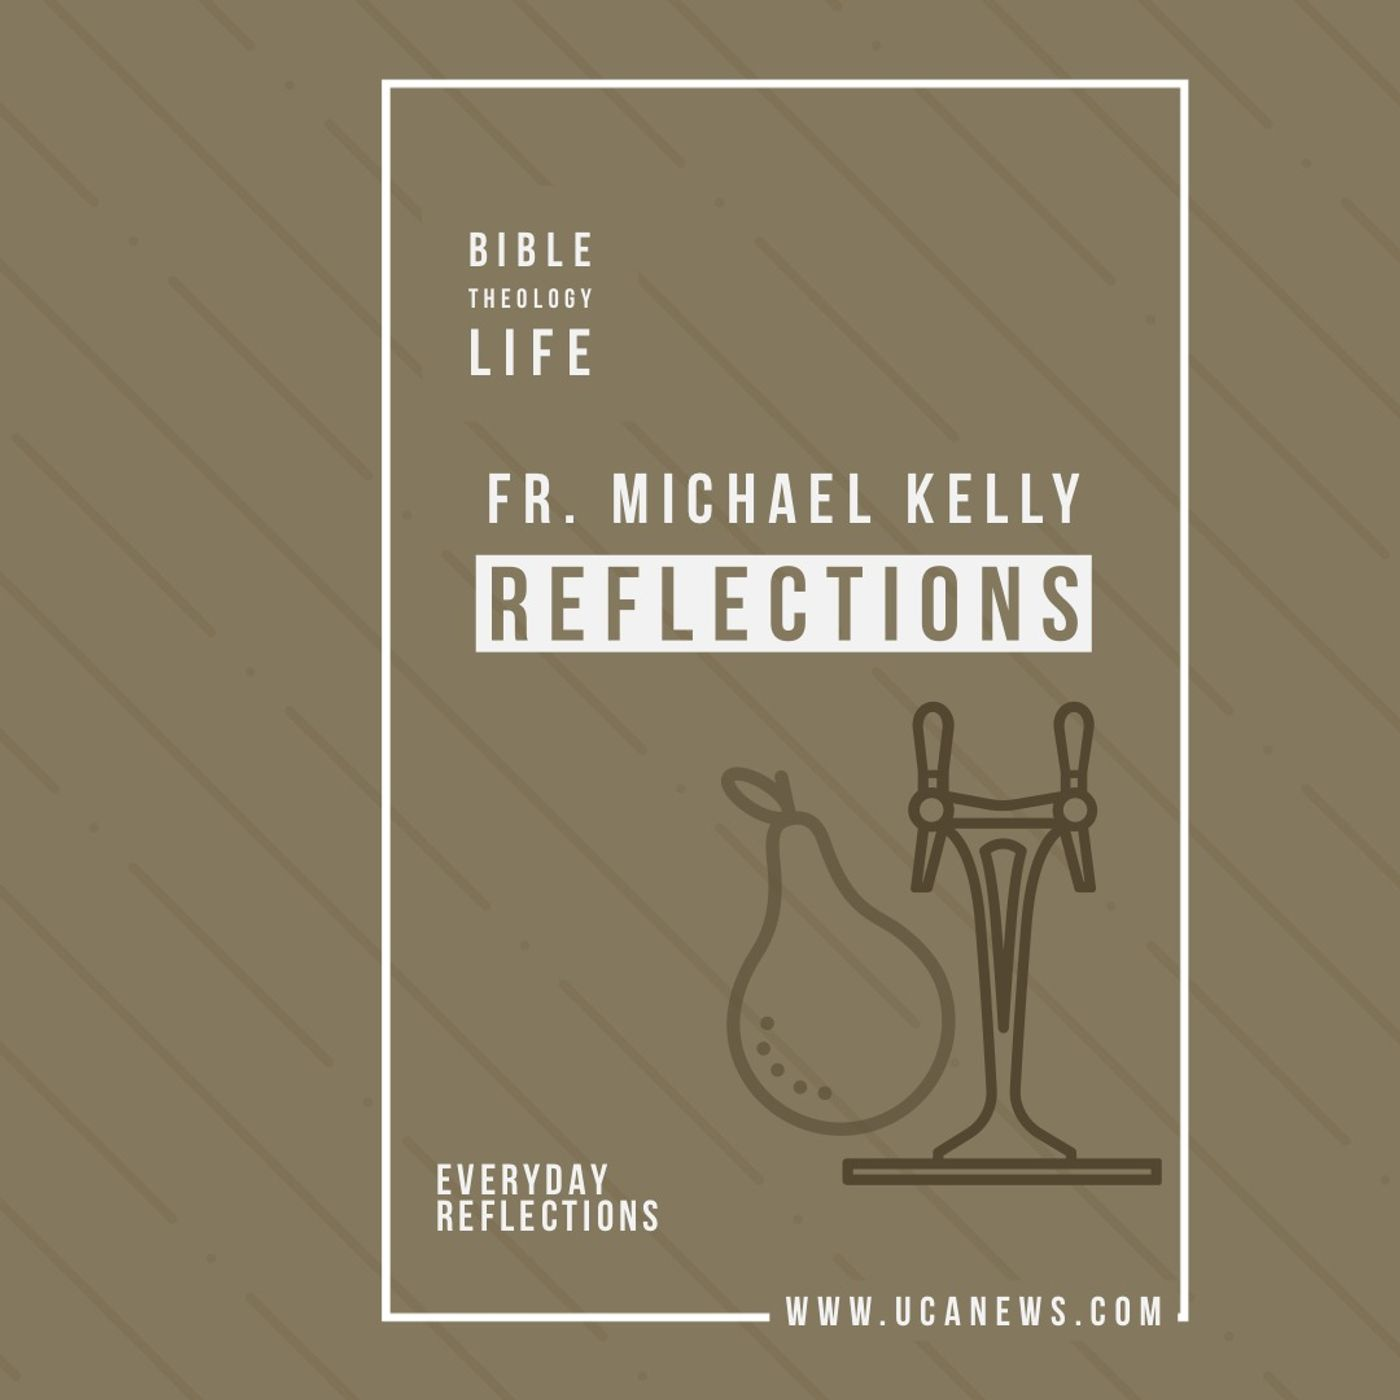 Reflections with Fr. Michael Kelly - Friday 15 Oct, 2021